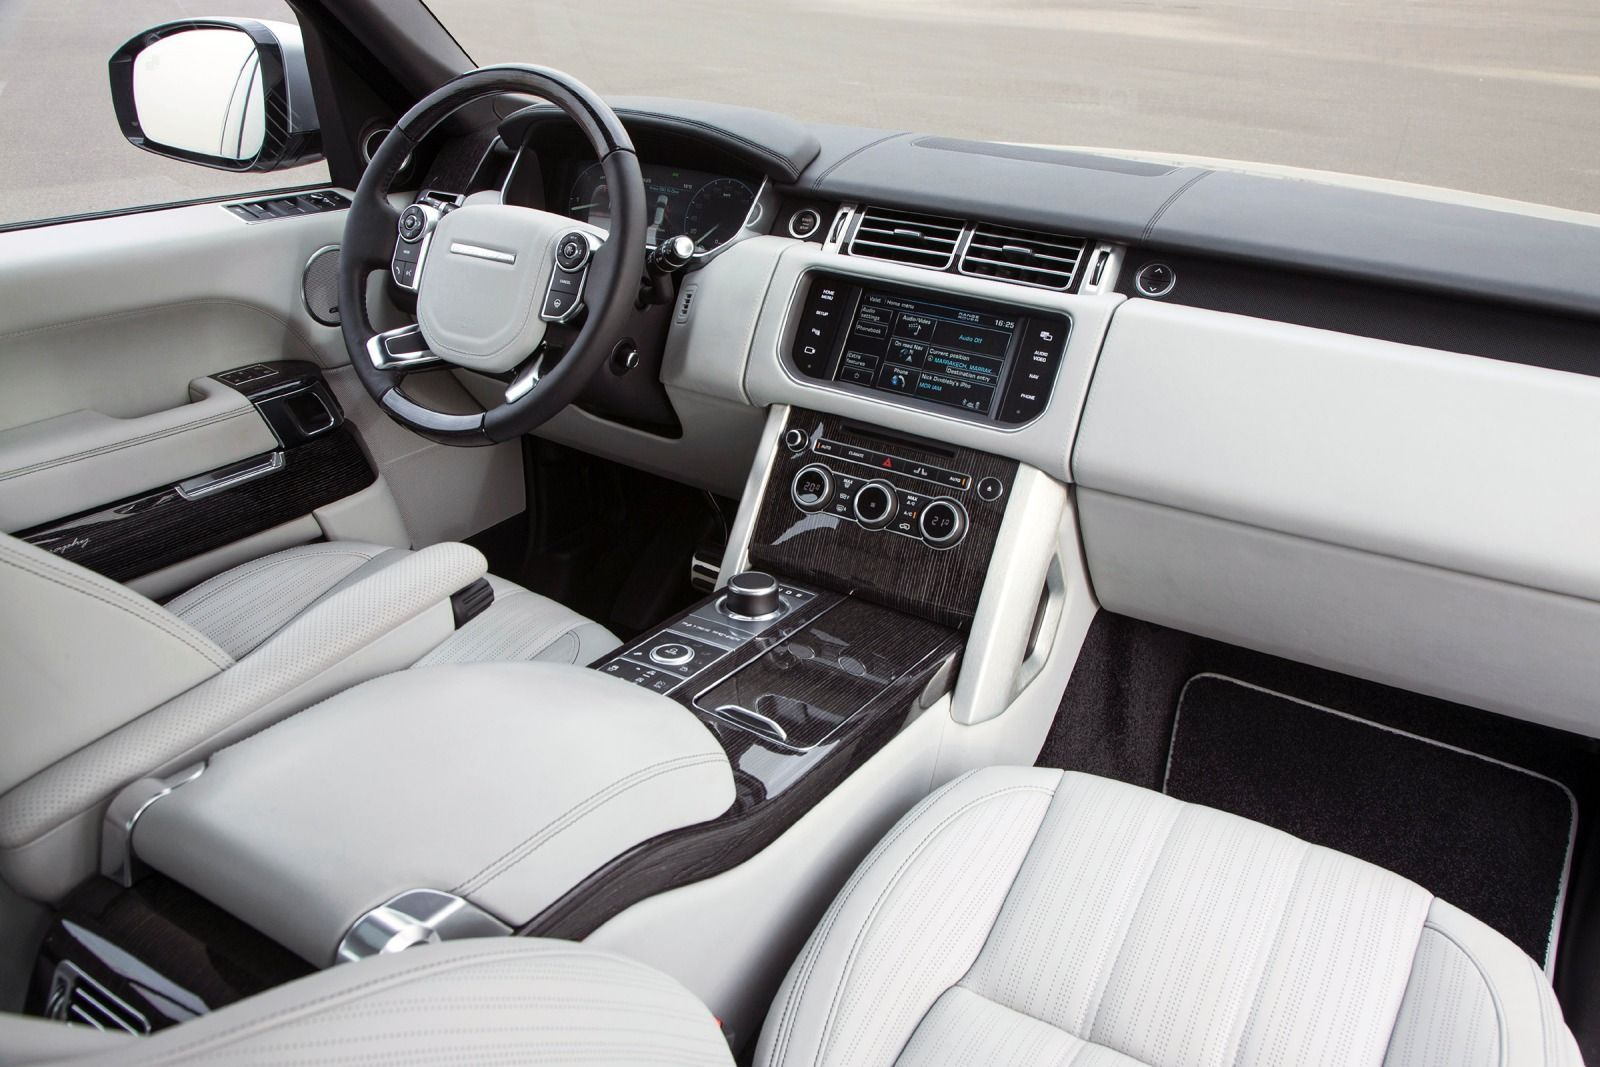 2016 land rover range rover sport 4dr suv interior need for speed pinterest range rover sport range rovers and land rovers